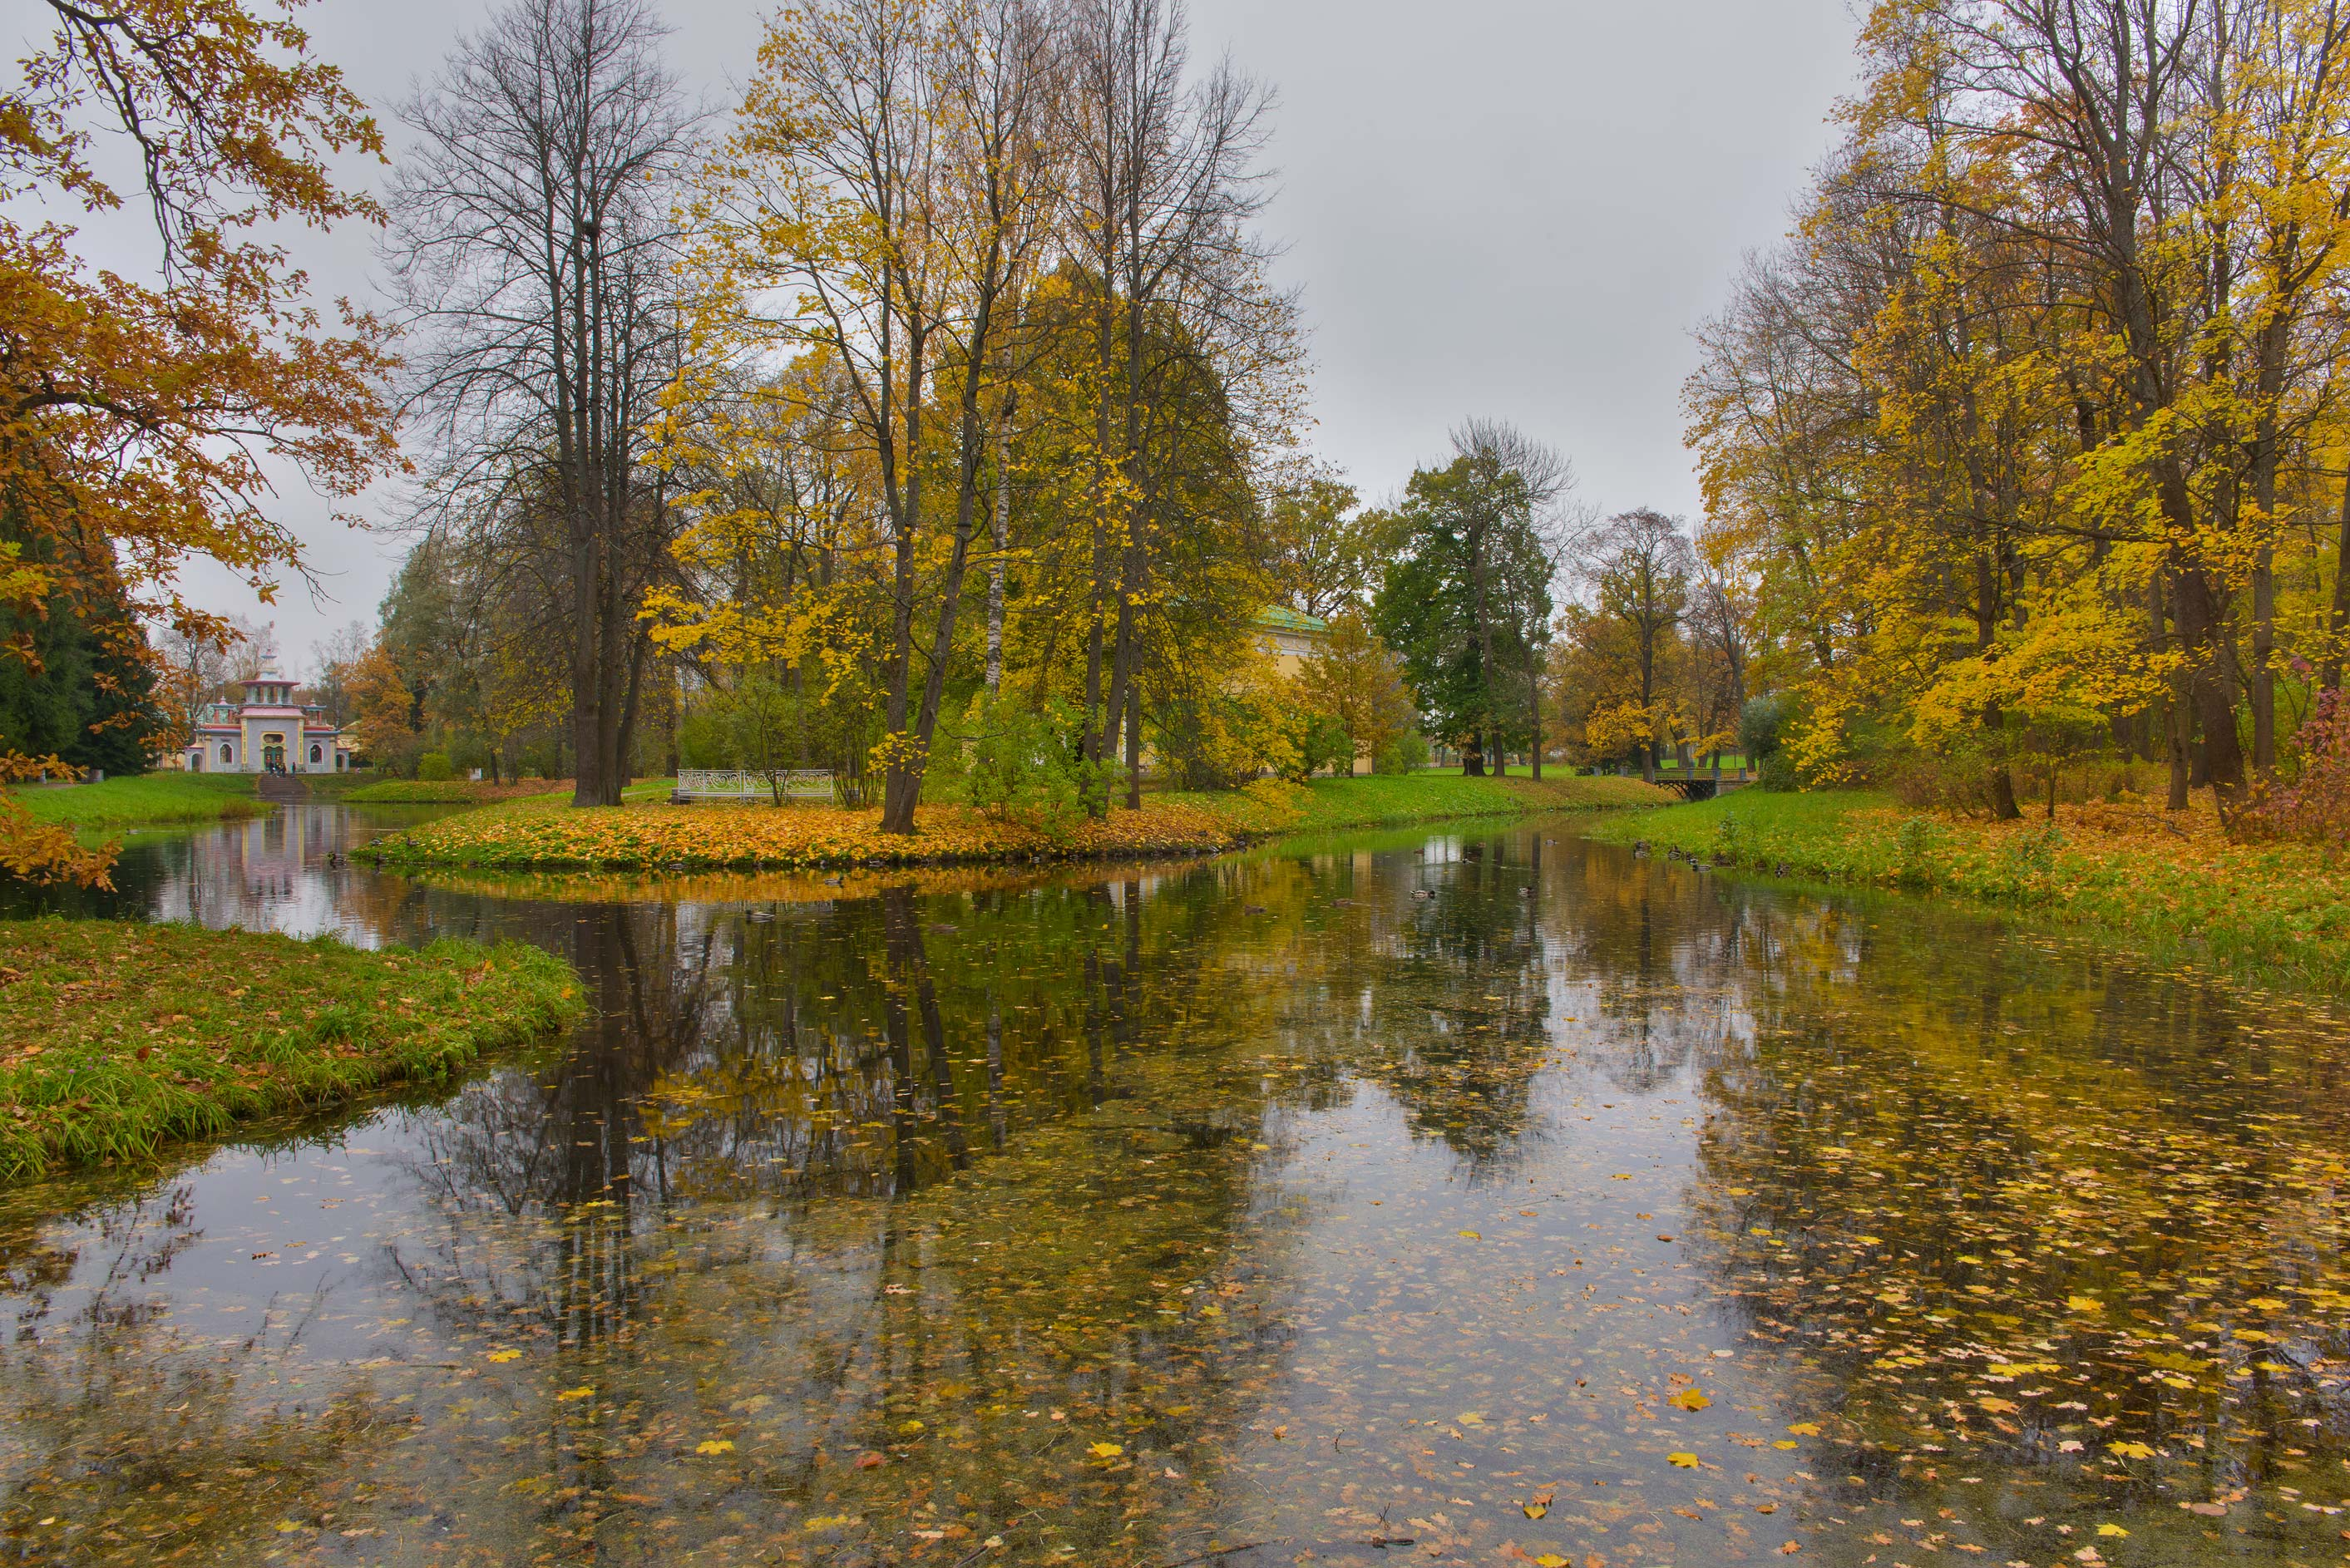 Upper Ponds in Catherine Park. Pushkin (former Tsarskoe Selo) near St.Petersburg, Russia